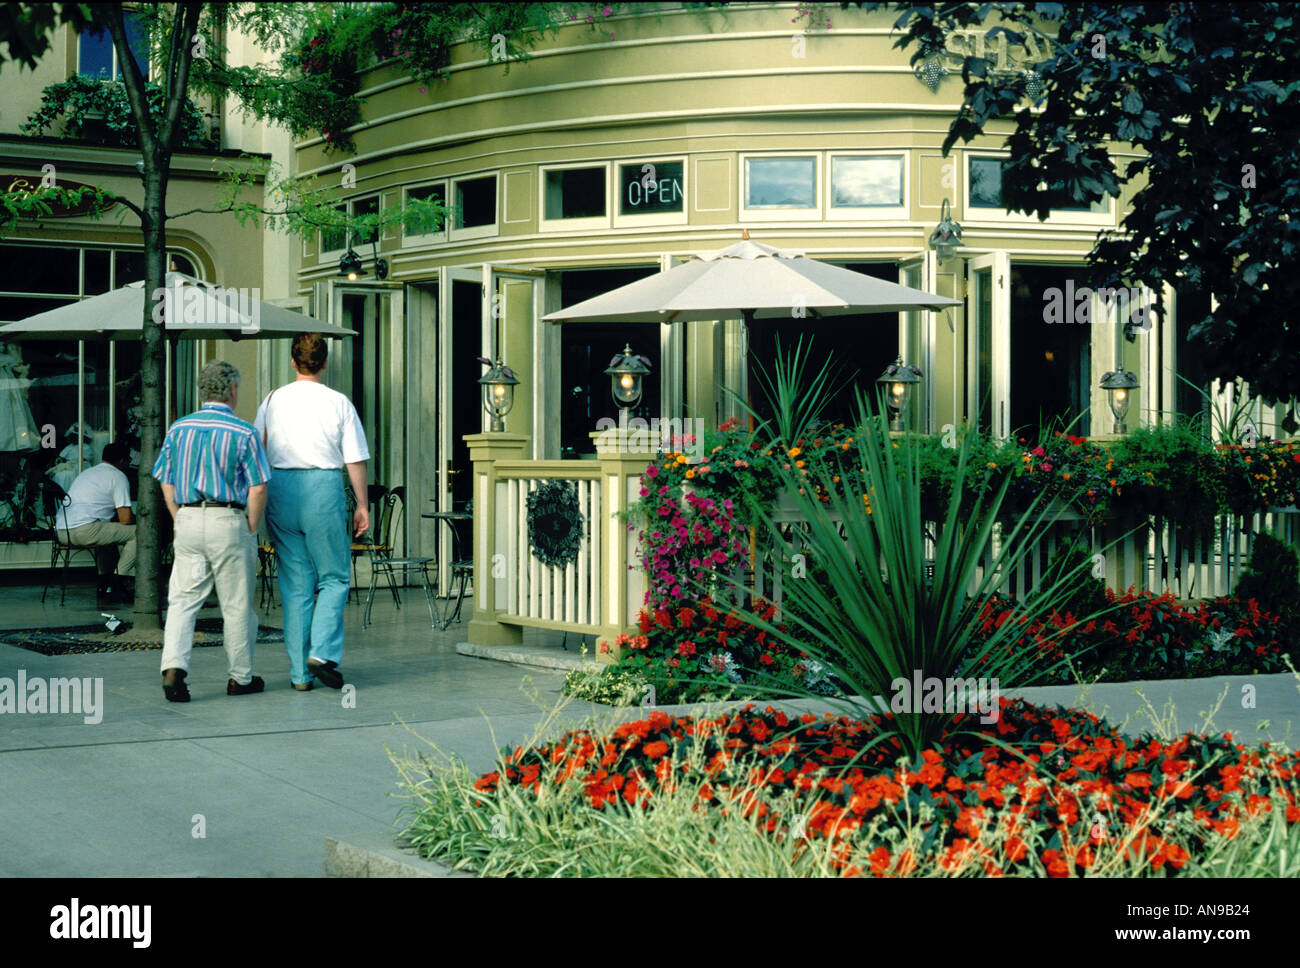 Shaw Cafe Niagara on the lake Ontario Canada - Stock Image